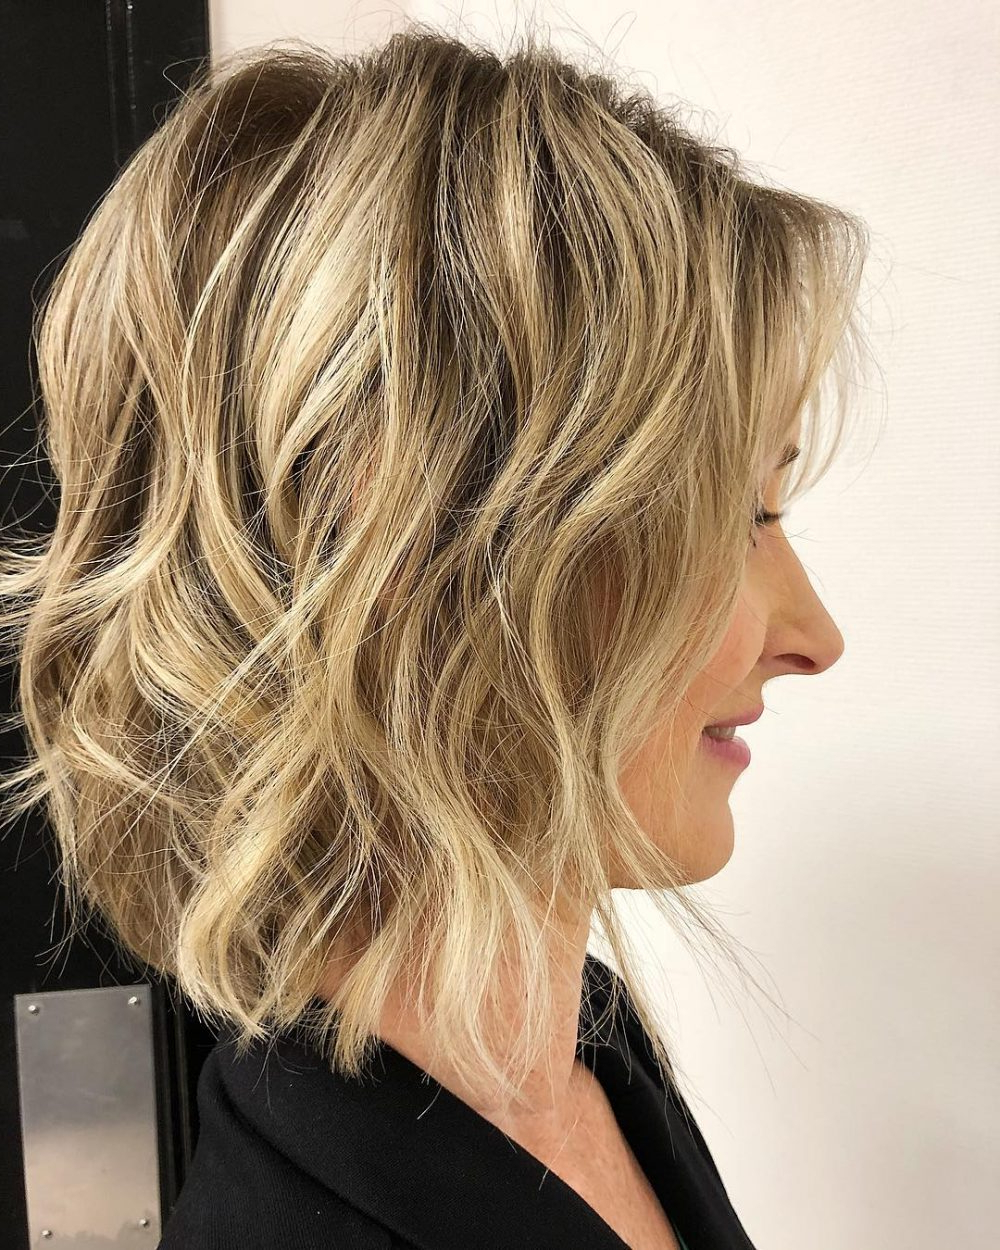 43 Perfect Short Hairstyles For Fine Hair In 2018 With Regard To Choppy Tousled Bob Haircuts For Fine Hair (View 9 of 20)